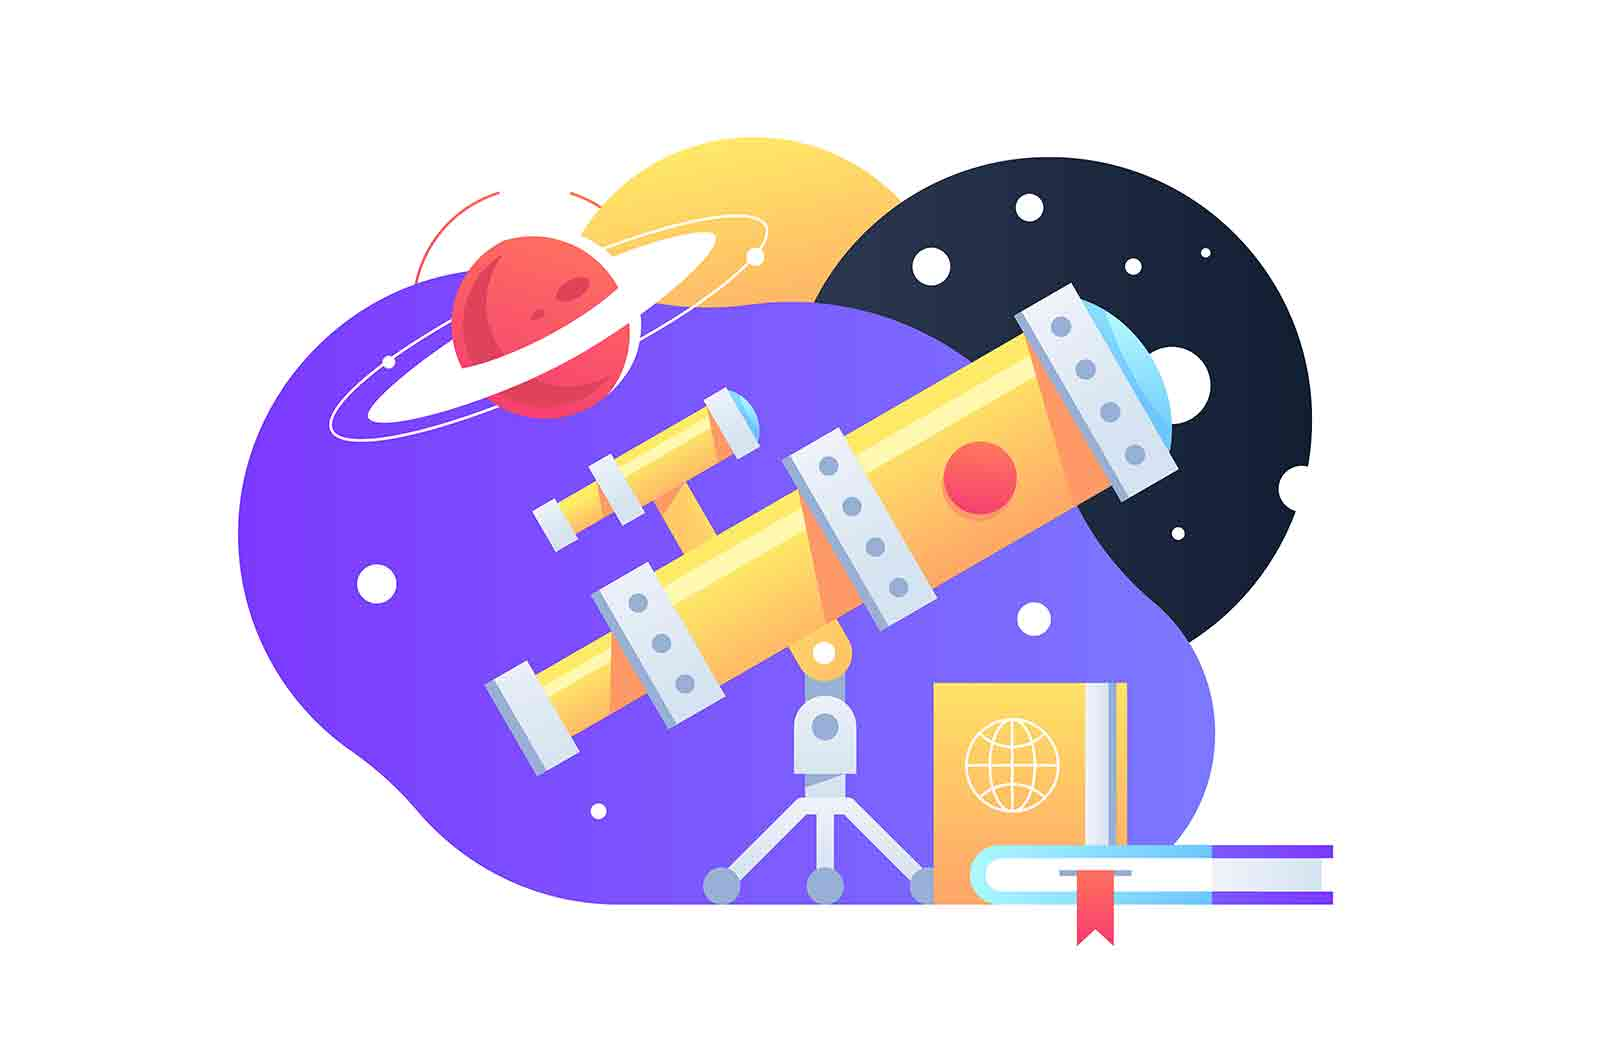 Bright yellow telescope vector illustration. Planets and galaxy flat style. Explore cosmos. Study star. Education and astronomy concept.